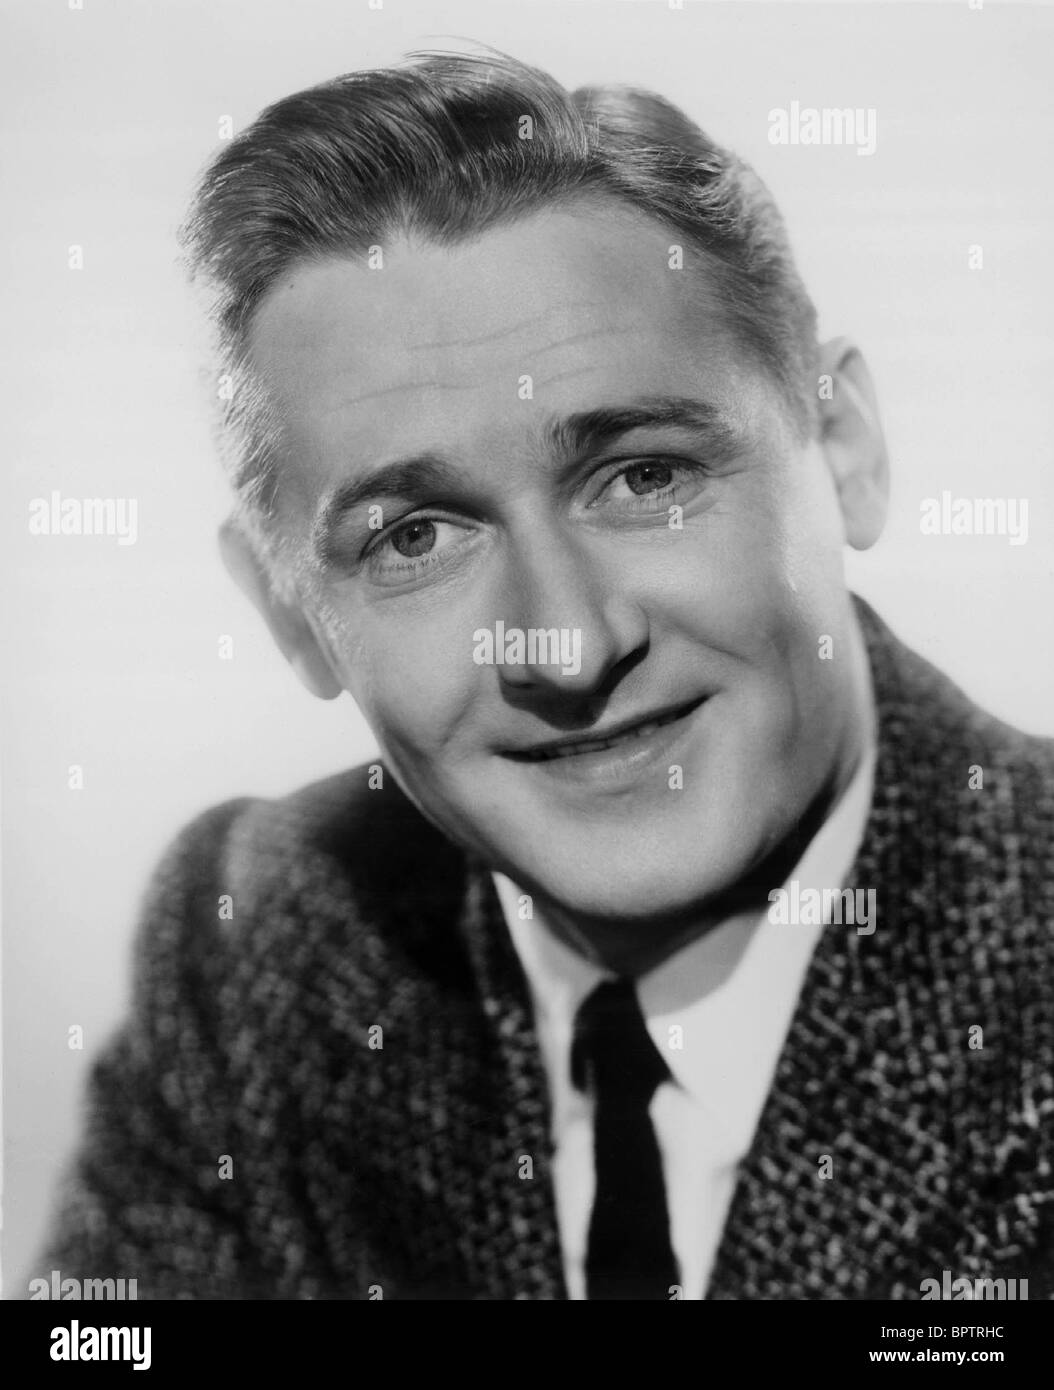 ALAN YOUNG ACTOR (1955) - Stock Image